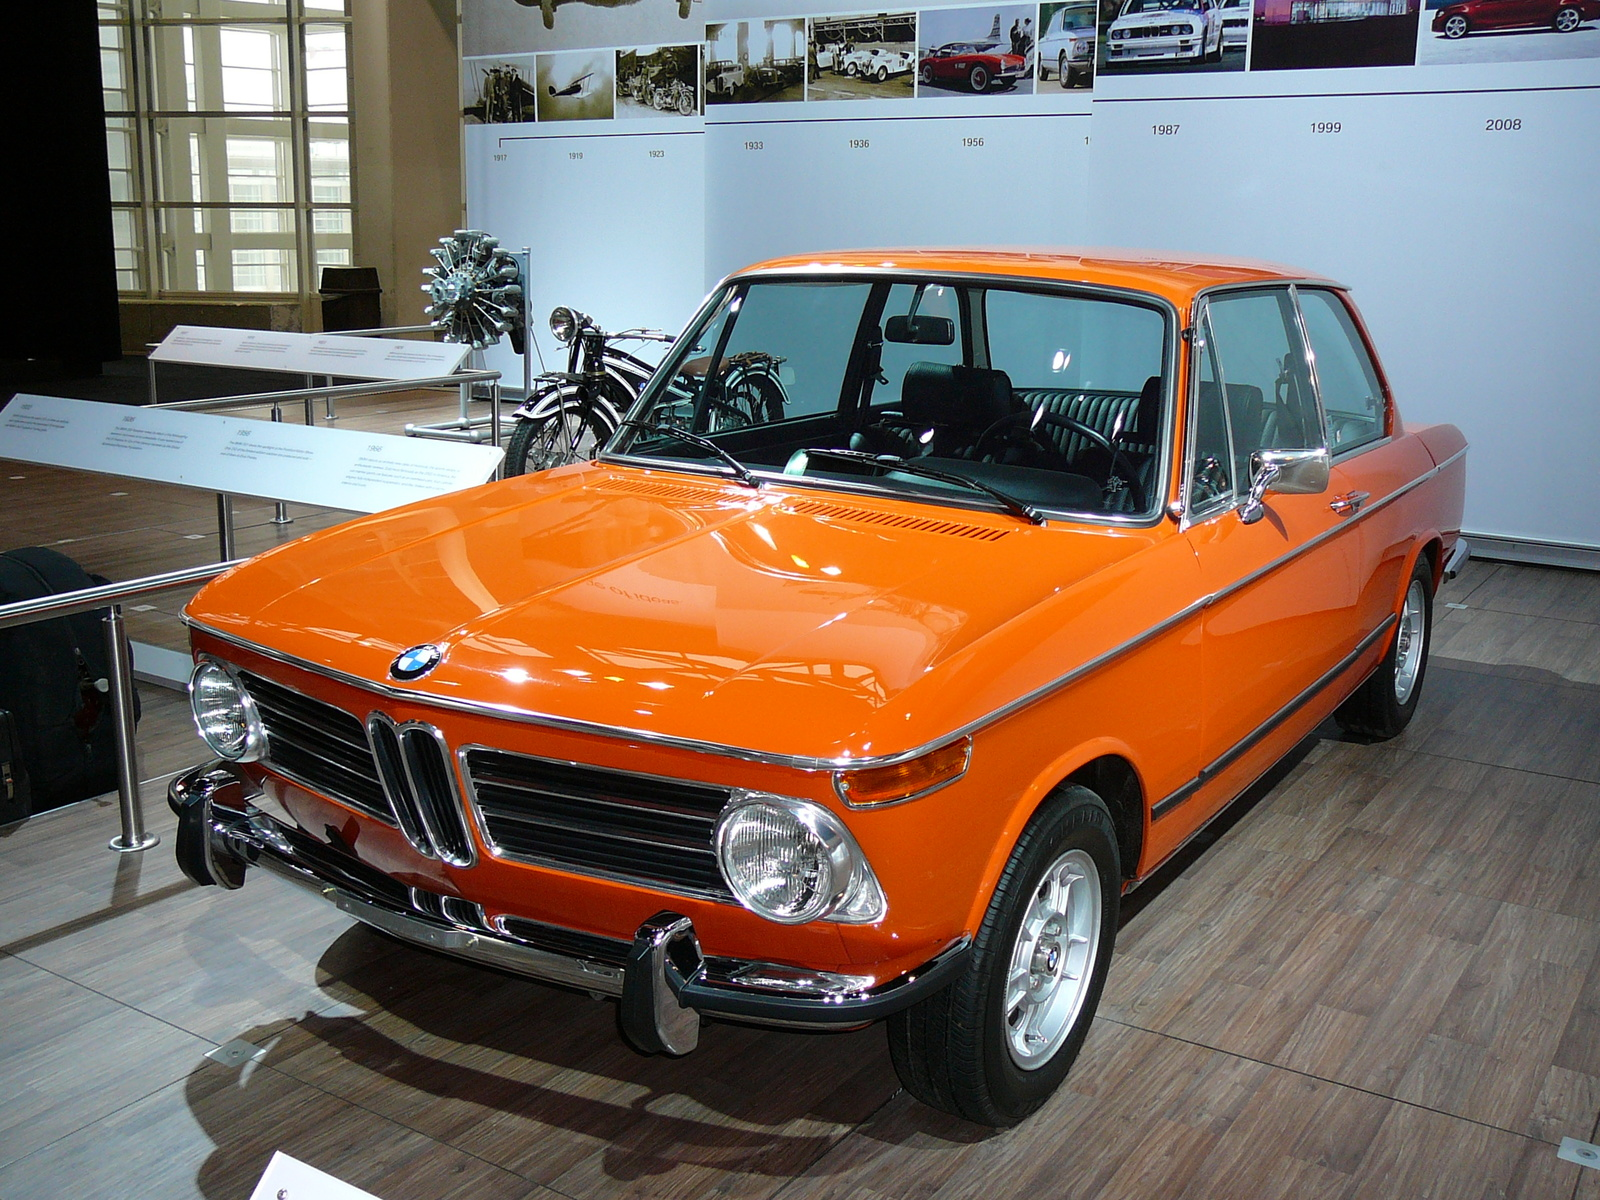 Bmw 2002 Tii Race Car >> 1971 BMW 2002 - Pictures - CarGurus